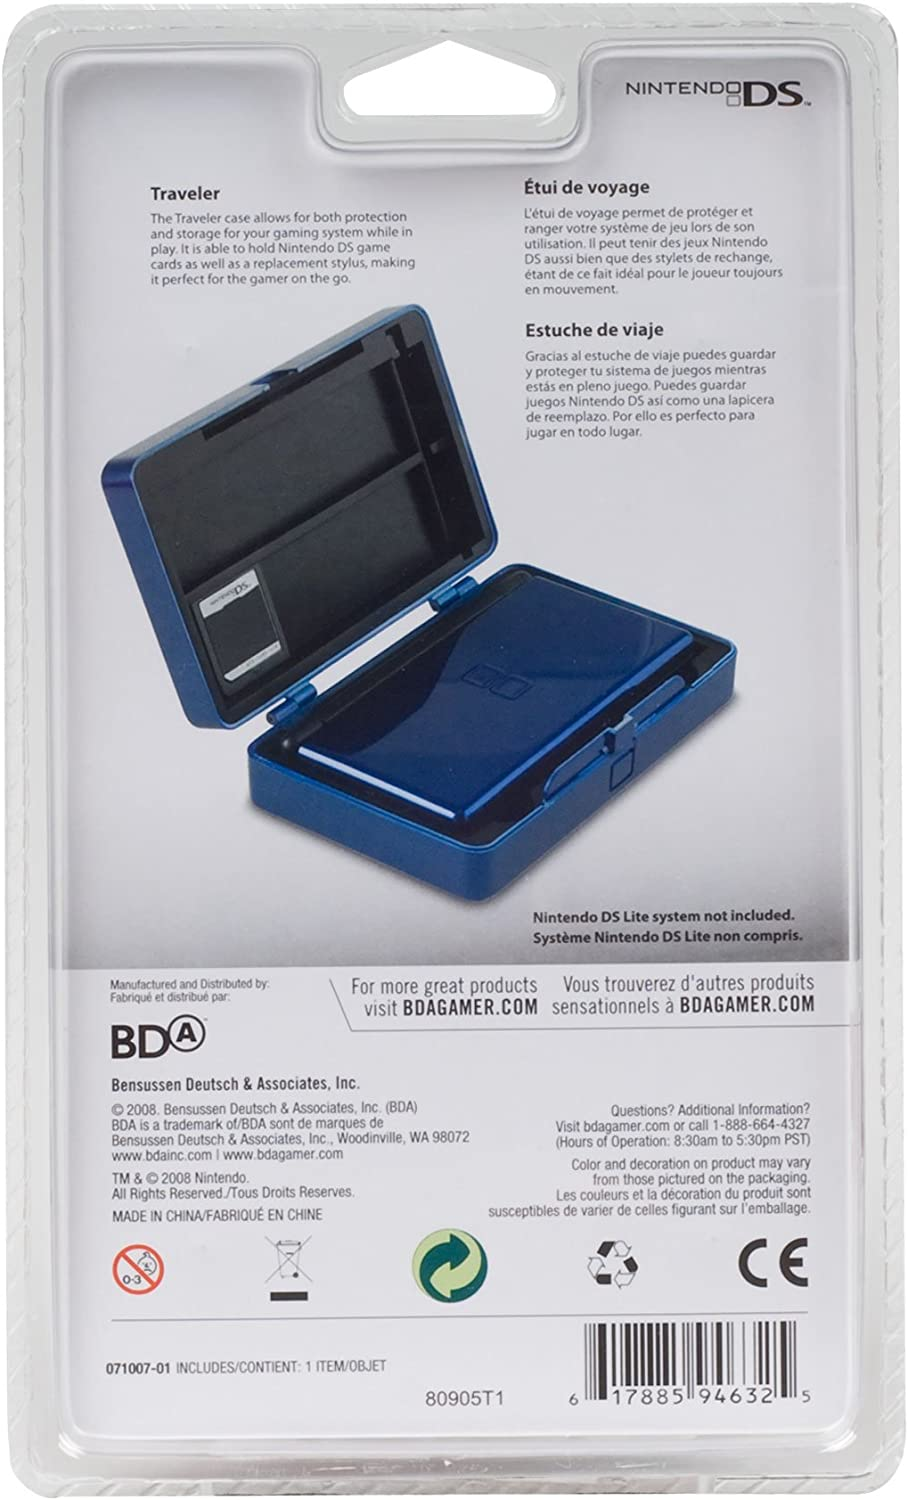 Amazon.com: Nintendo DS Lite Traveler - Black: Video Games